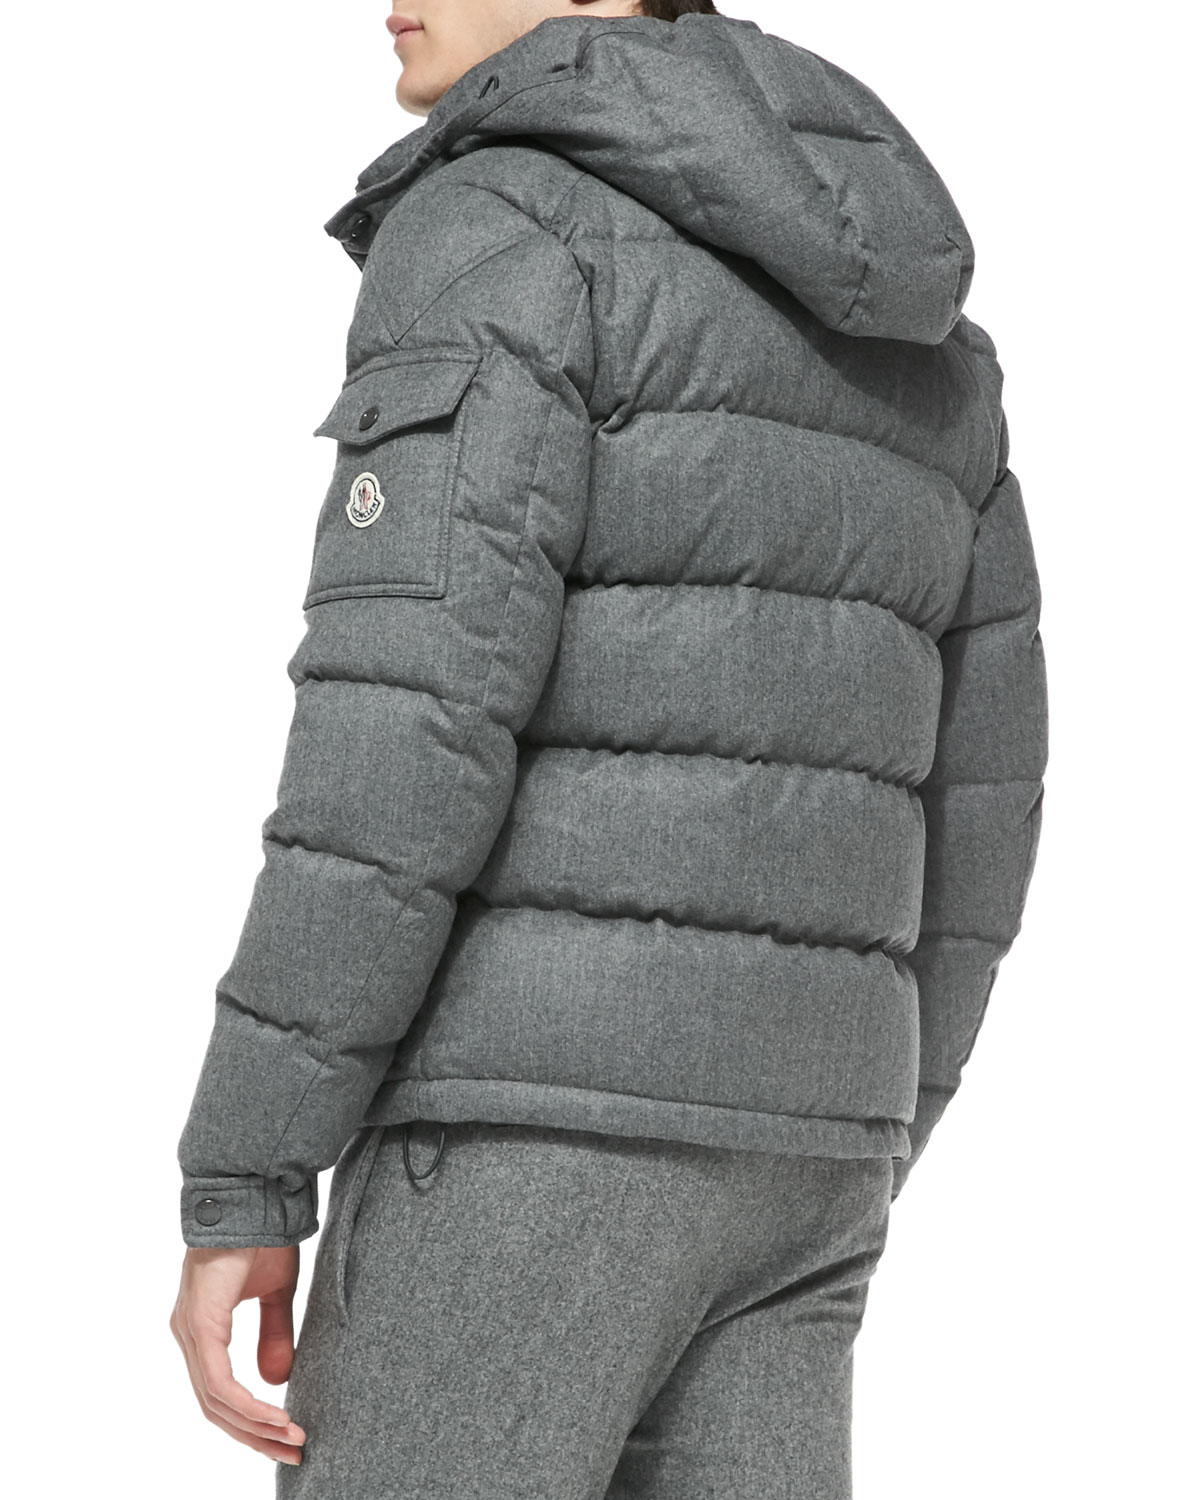 Lyst - Moncler Mont Genevre Quilted Wool Jacket in Gray for Men 2528297dd9b